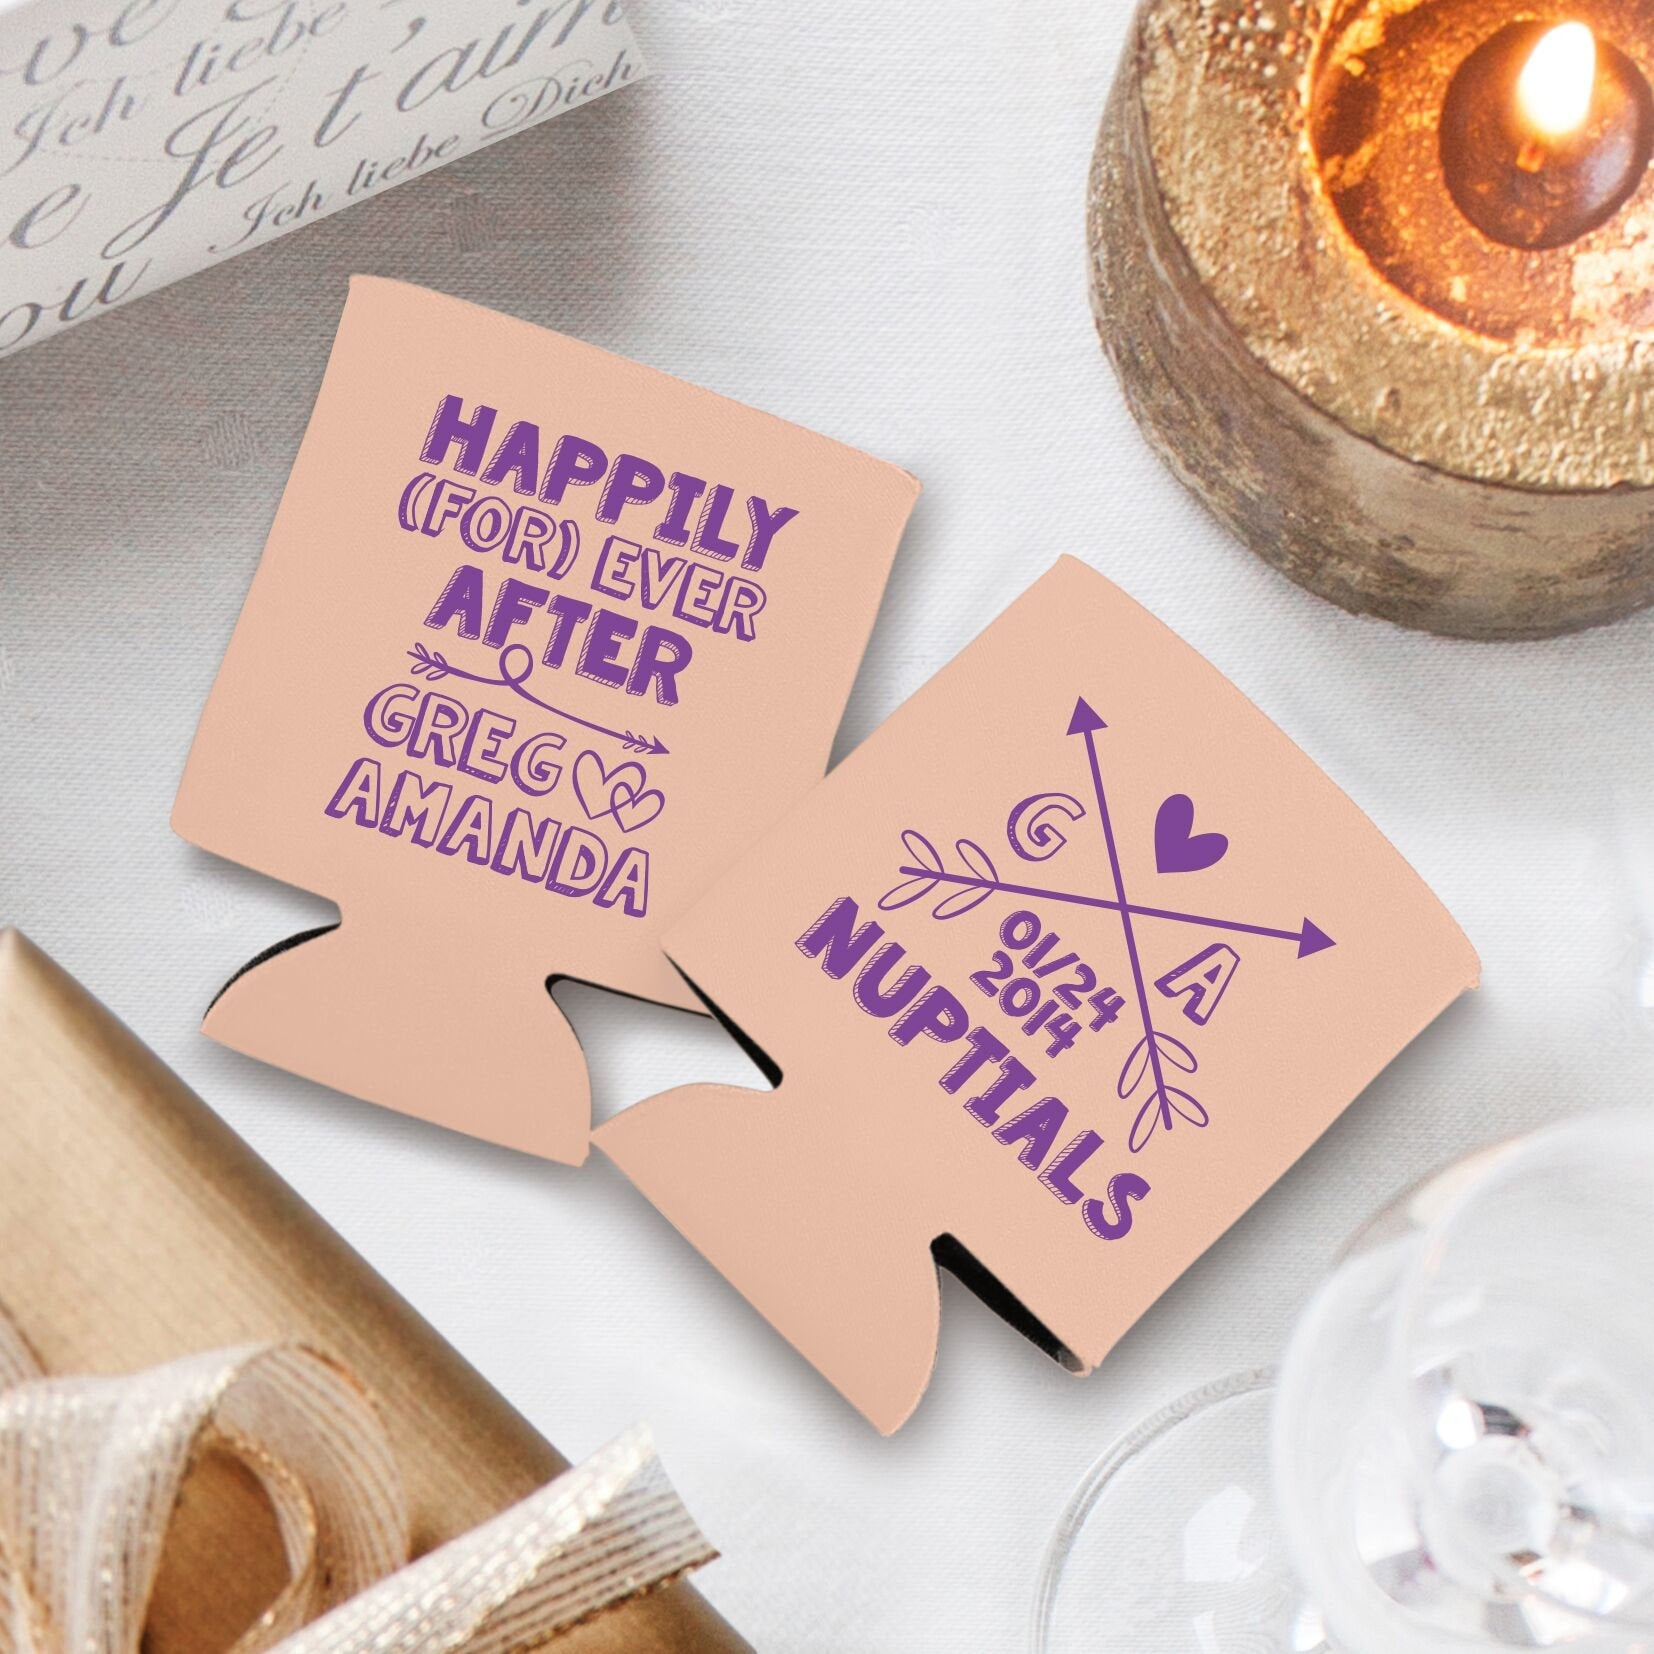 Happily (For) Ever After Koozie